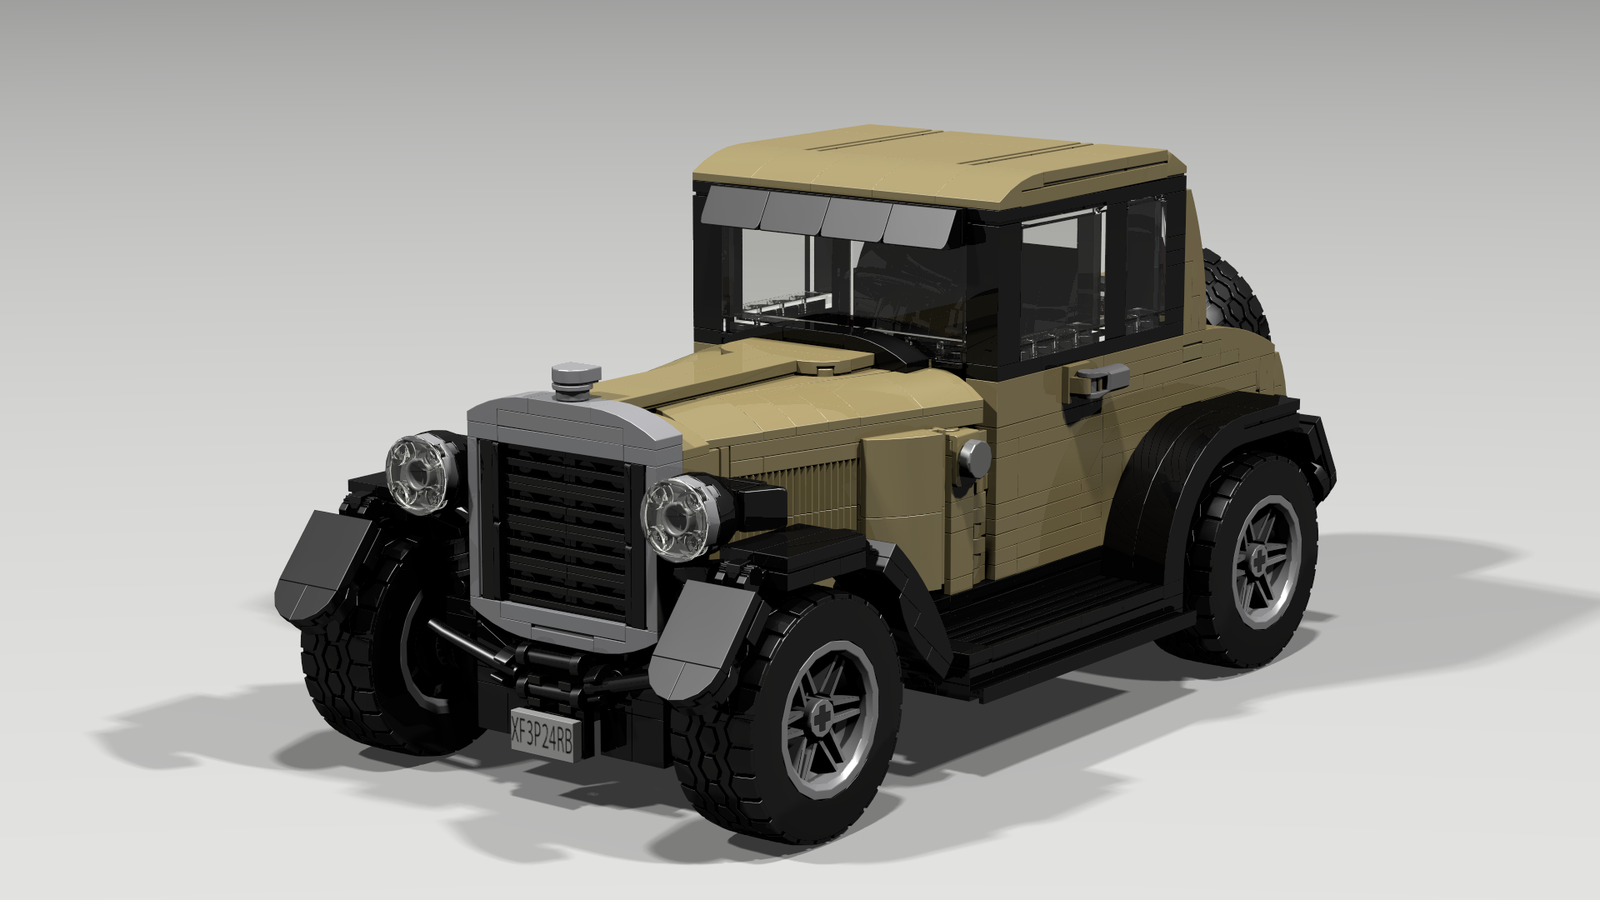 LEGO IDEAS - Product Ideas - Ford Model T on homemade science cars, homemade toy cars, homemade diesel cars, homemade slot cars, homemade hot wheels cars, homemade barbie cars, homemade play-doh, cools kinect's cars,